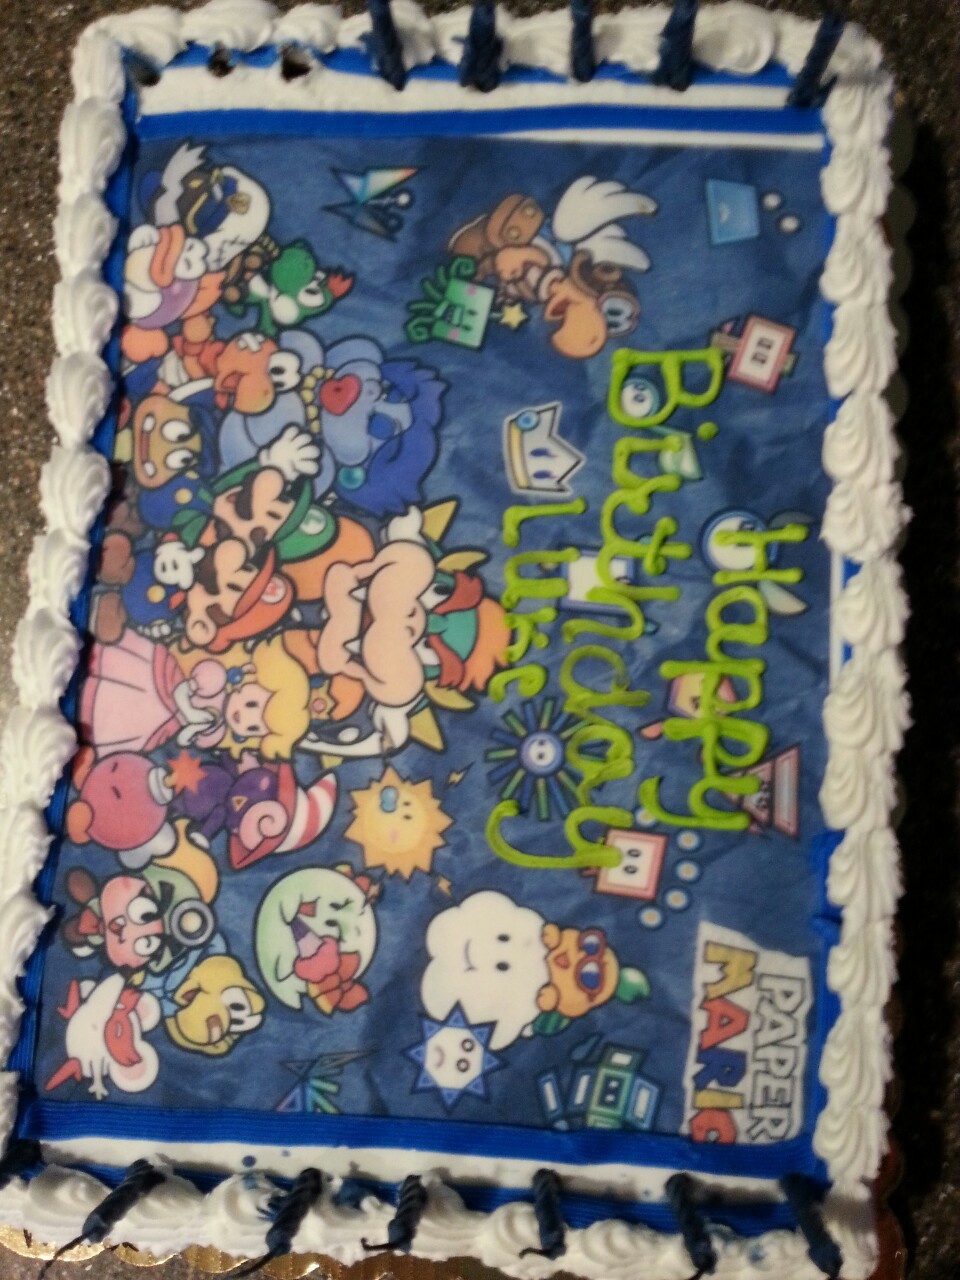 My little brother's amazing birth mas cake.